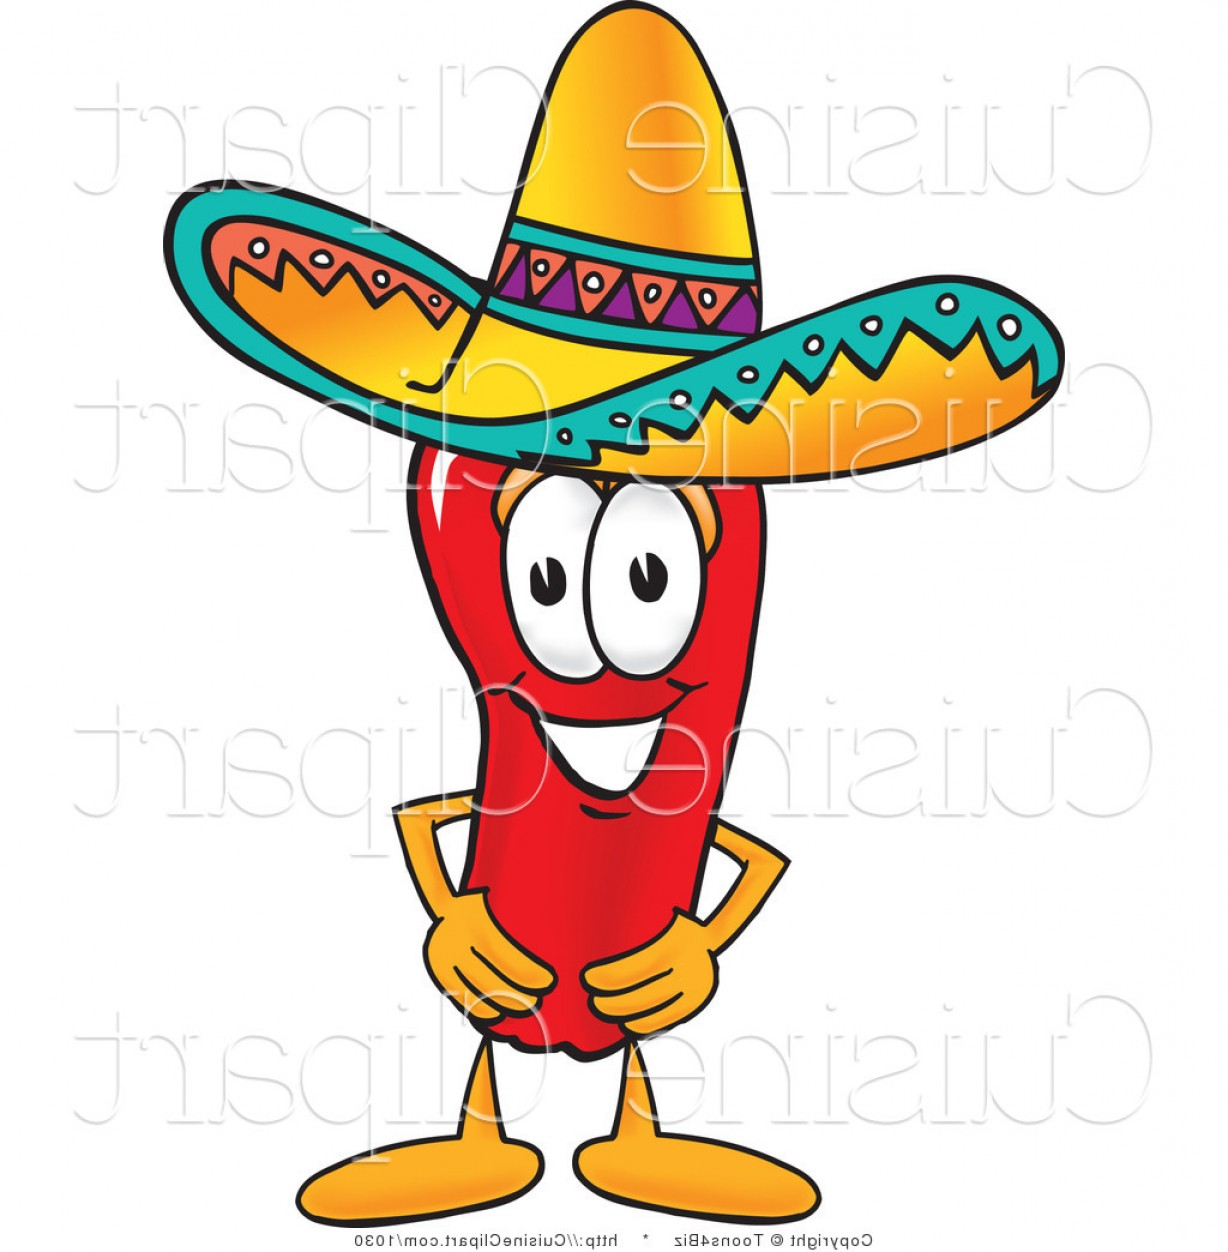 Vector Mexican Chili: Cuisine Clipart Of A Mexican Chili Pepper Wearing A Sombrero Hat By Toonsbiz